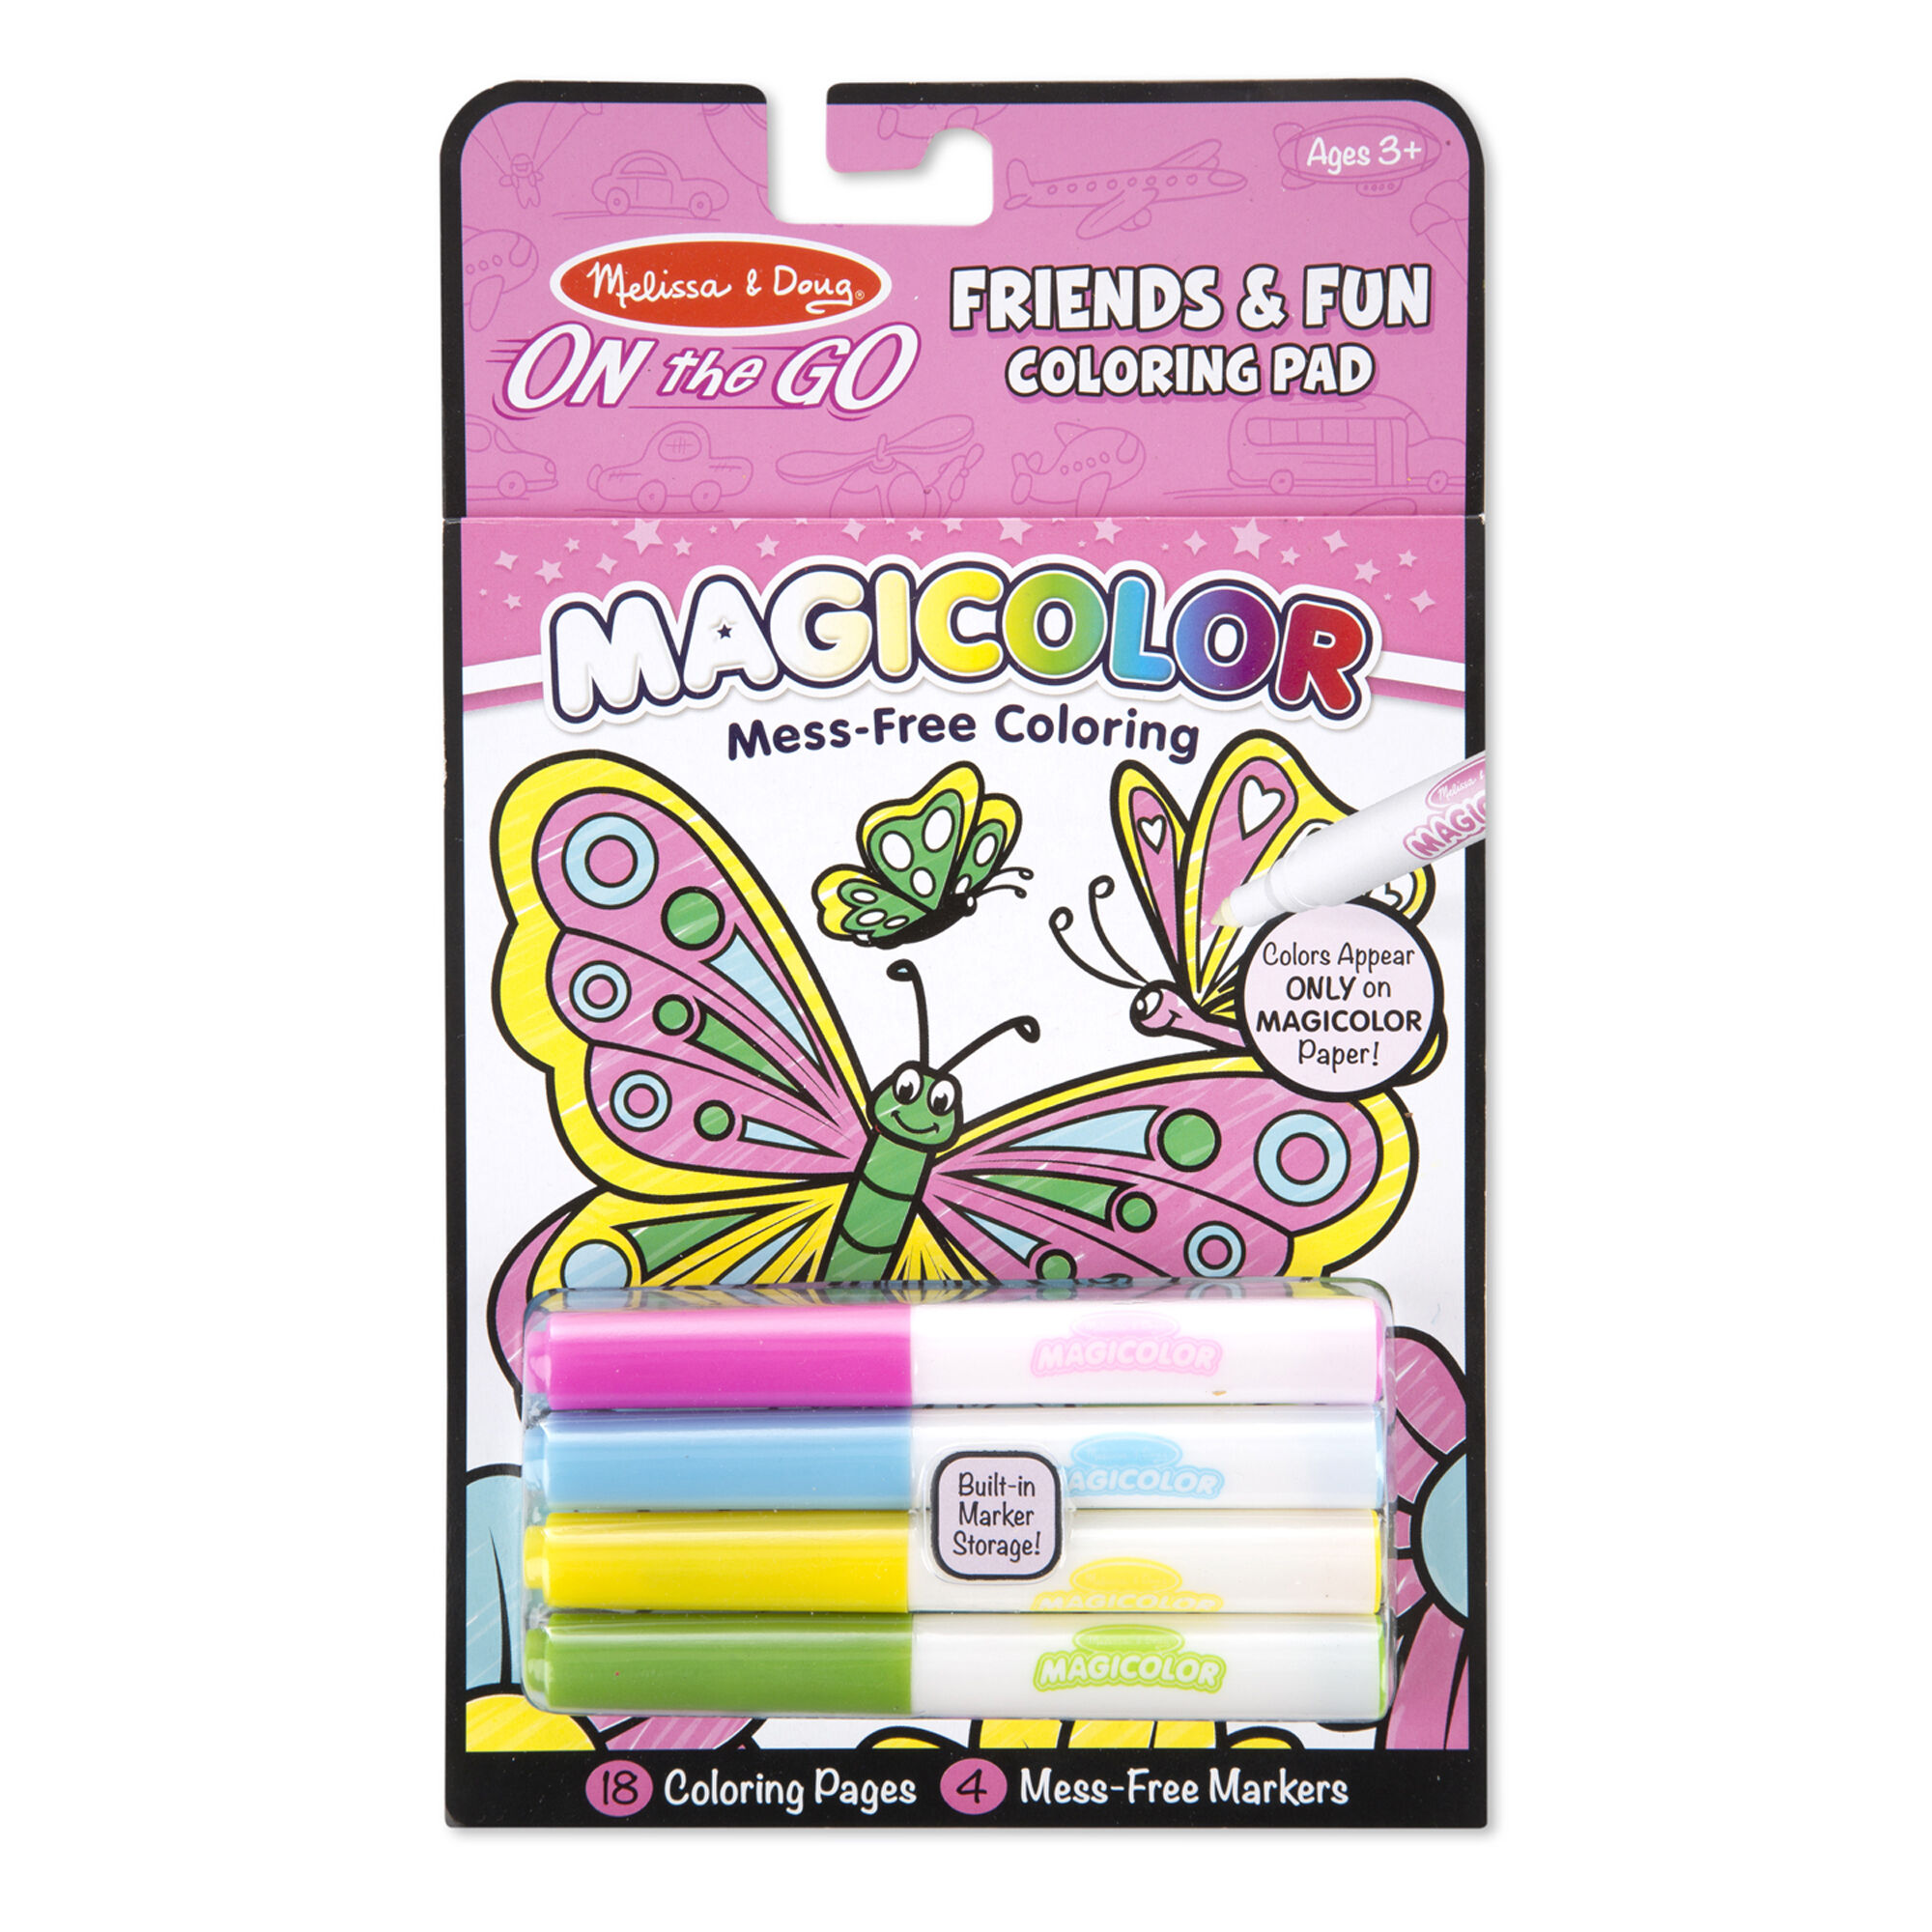 On The Go - Friends & Fun Coloring Pad Melissa & Doug